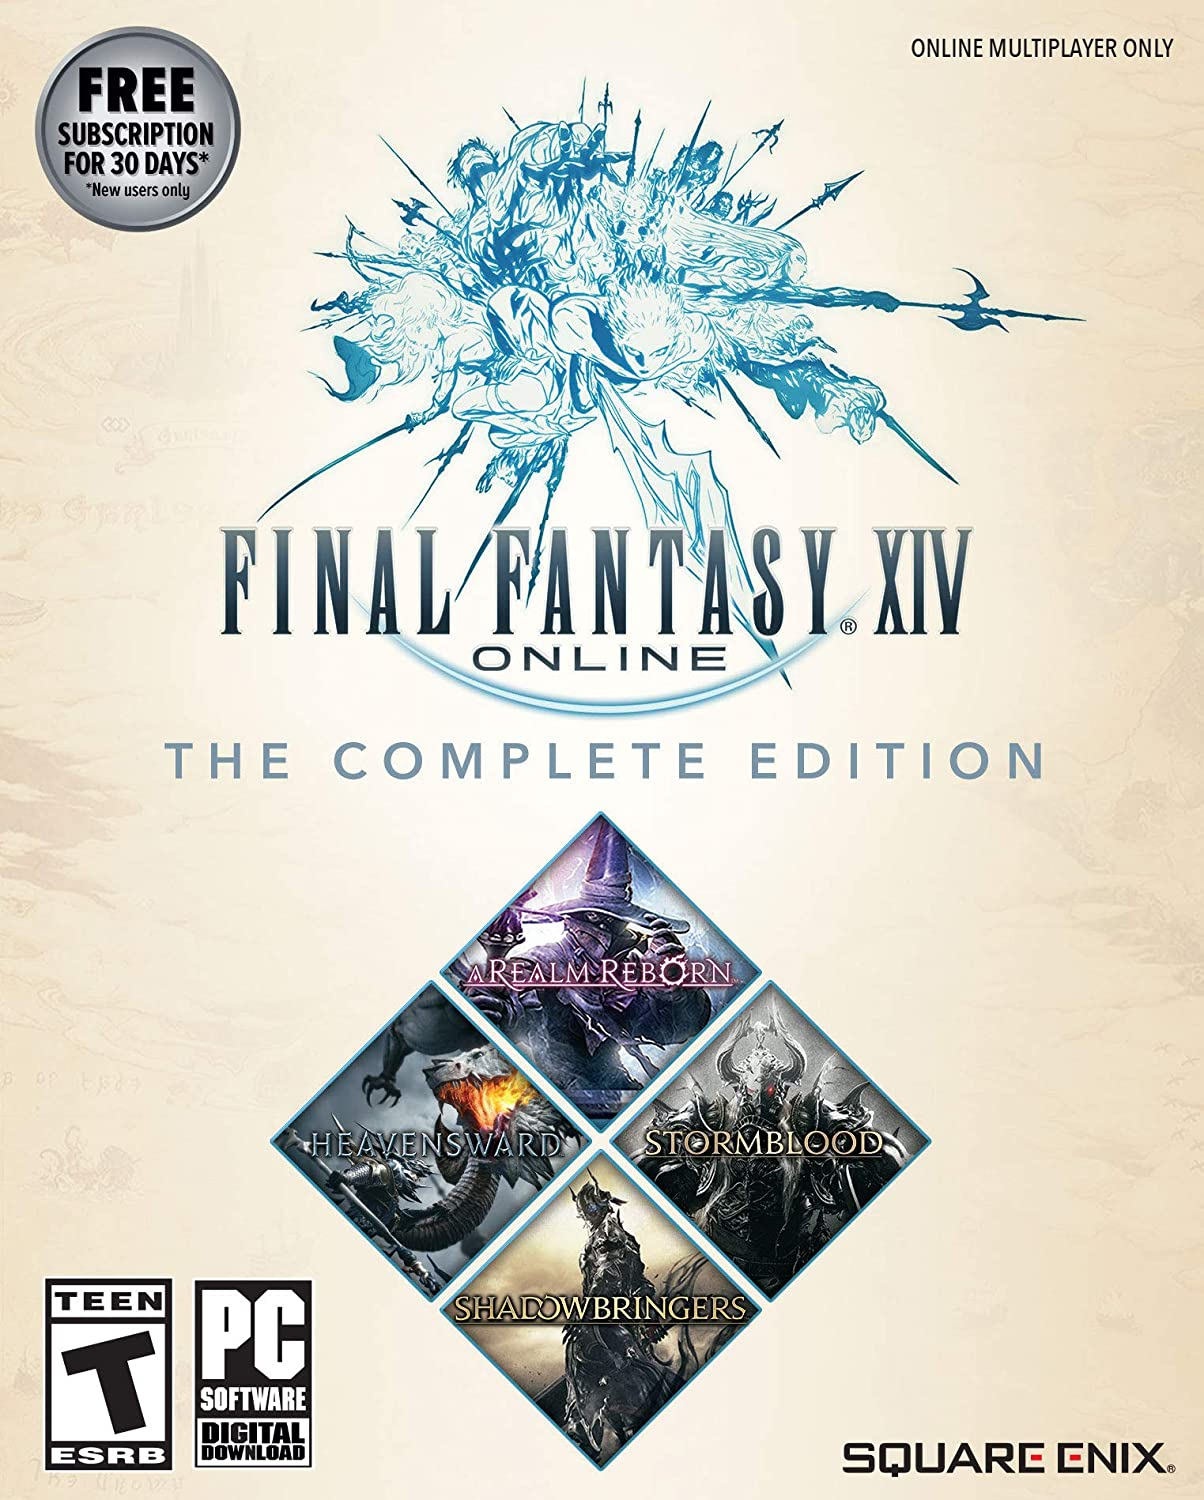 Amazon com: Final Fantasy XIV Online - Complete Edition [Online Game